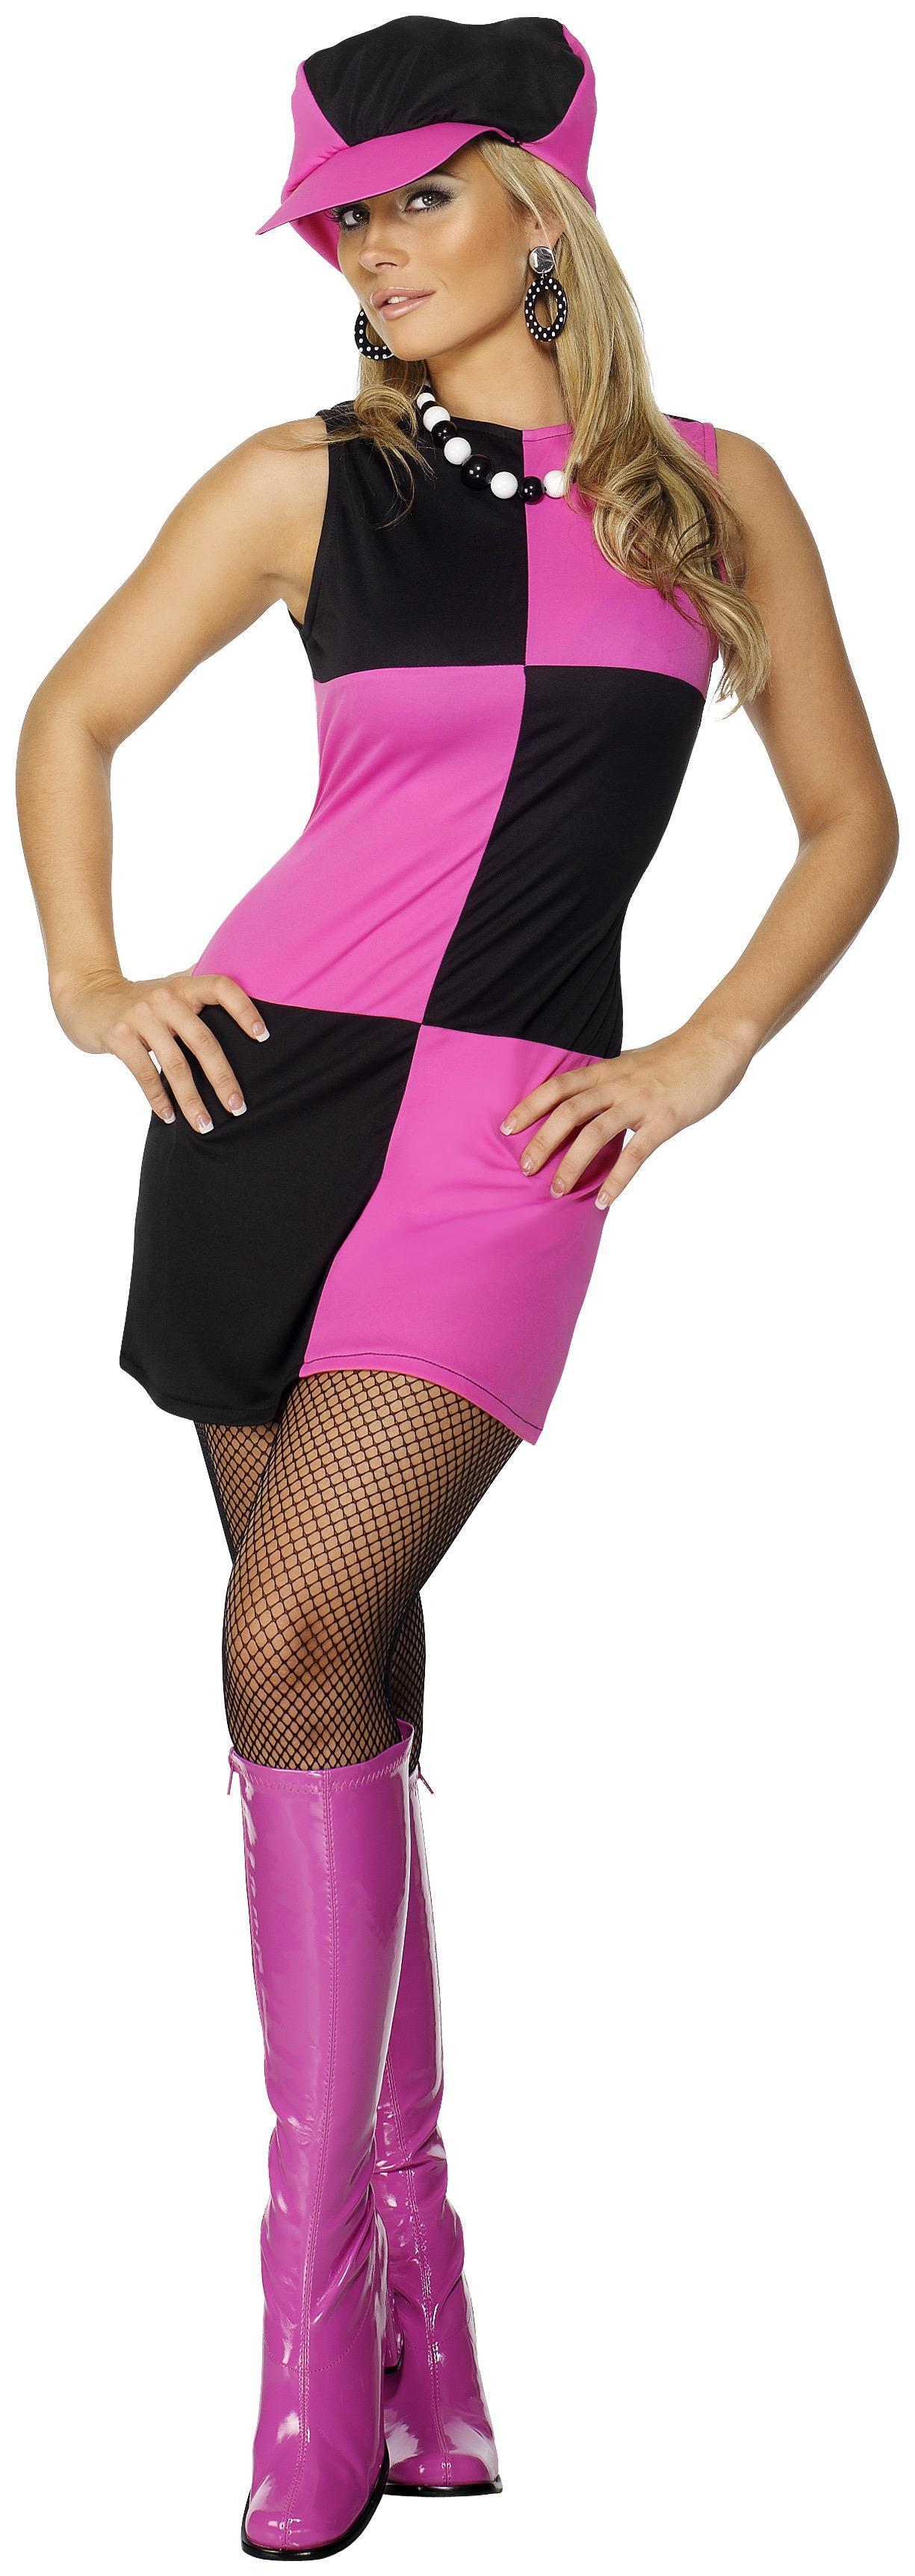 60s Swinging 60s Costume Pink & Black